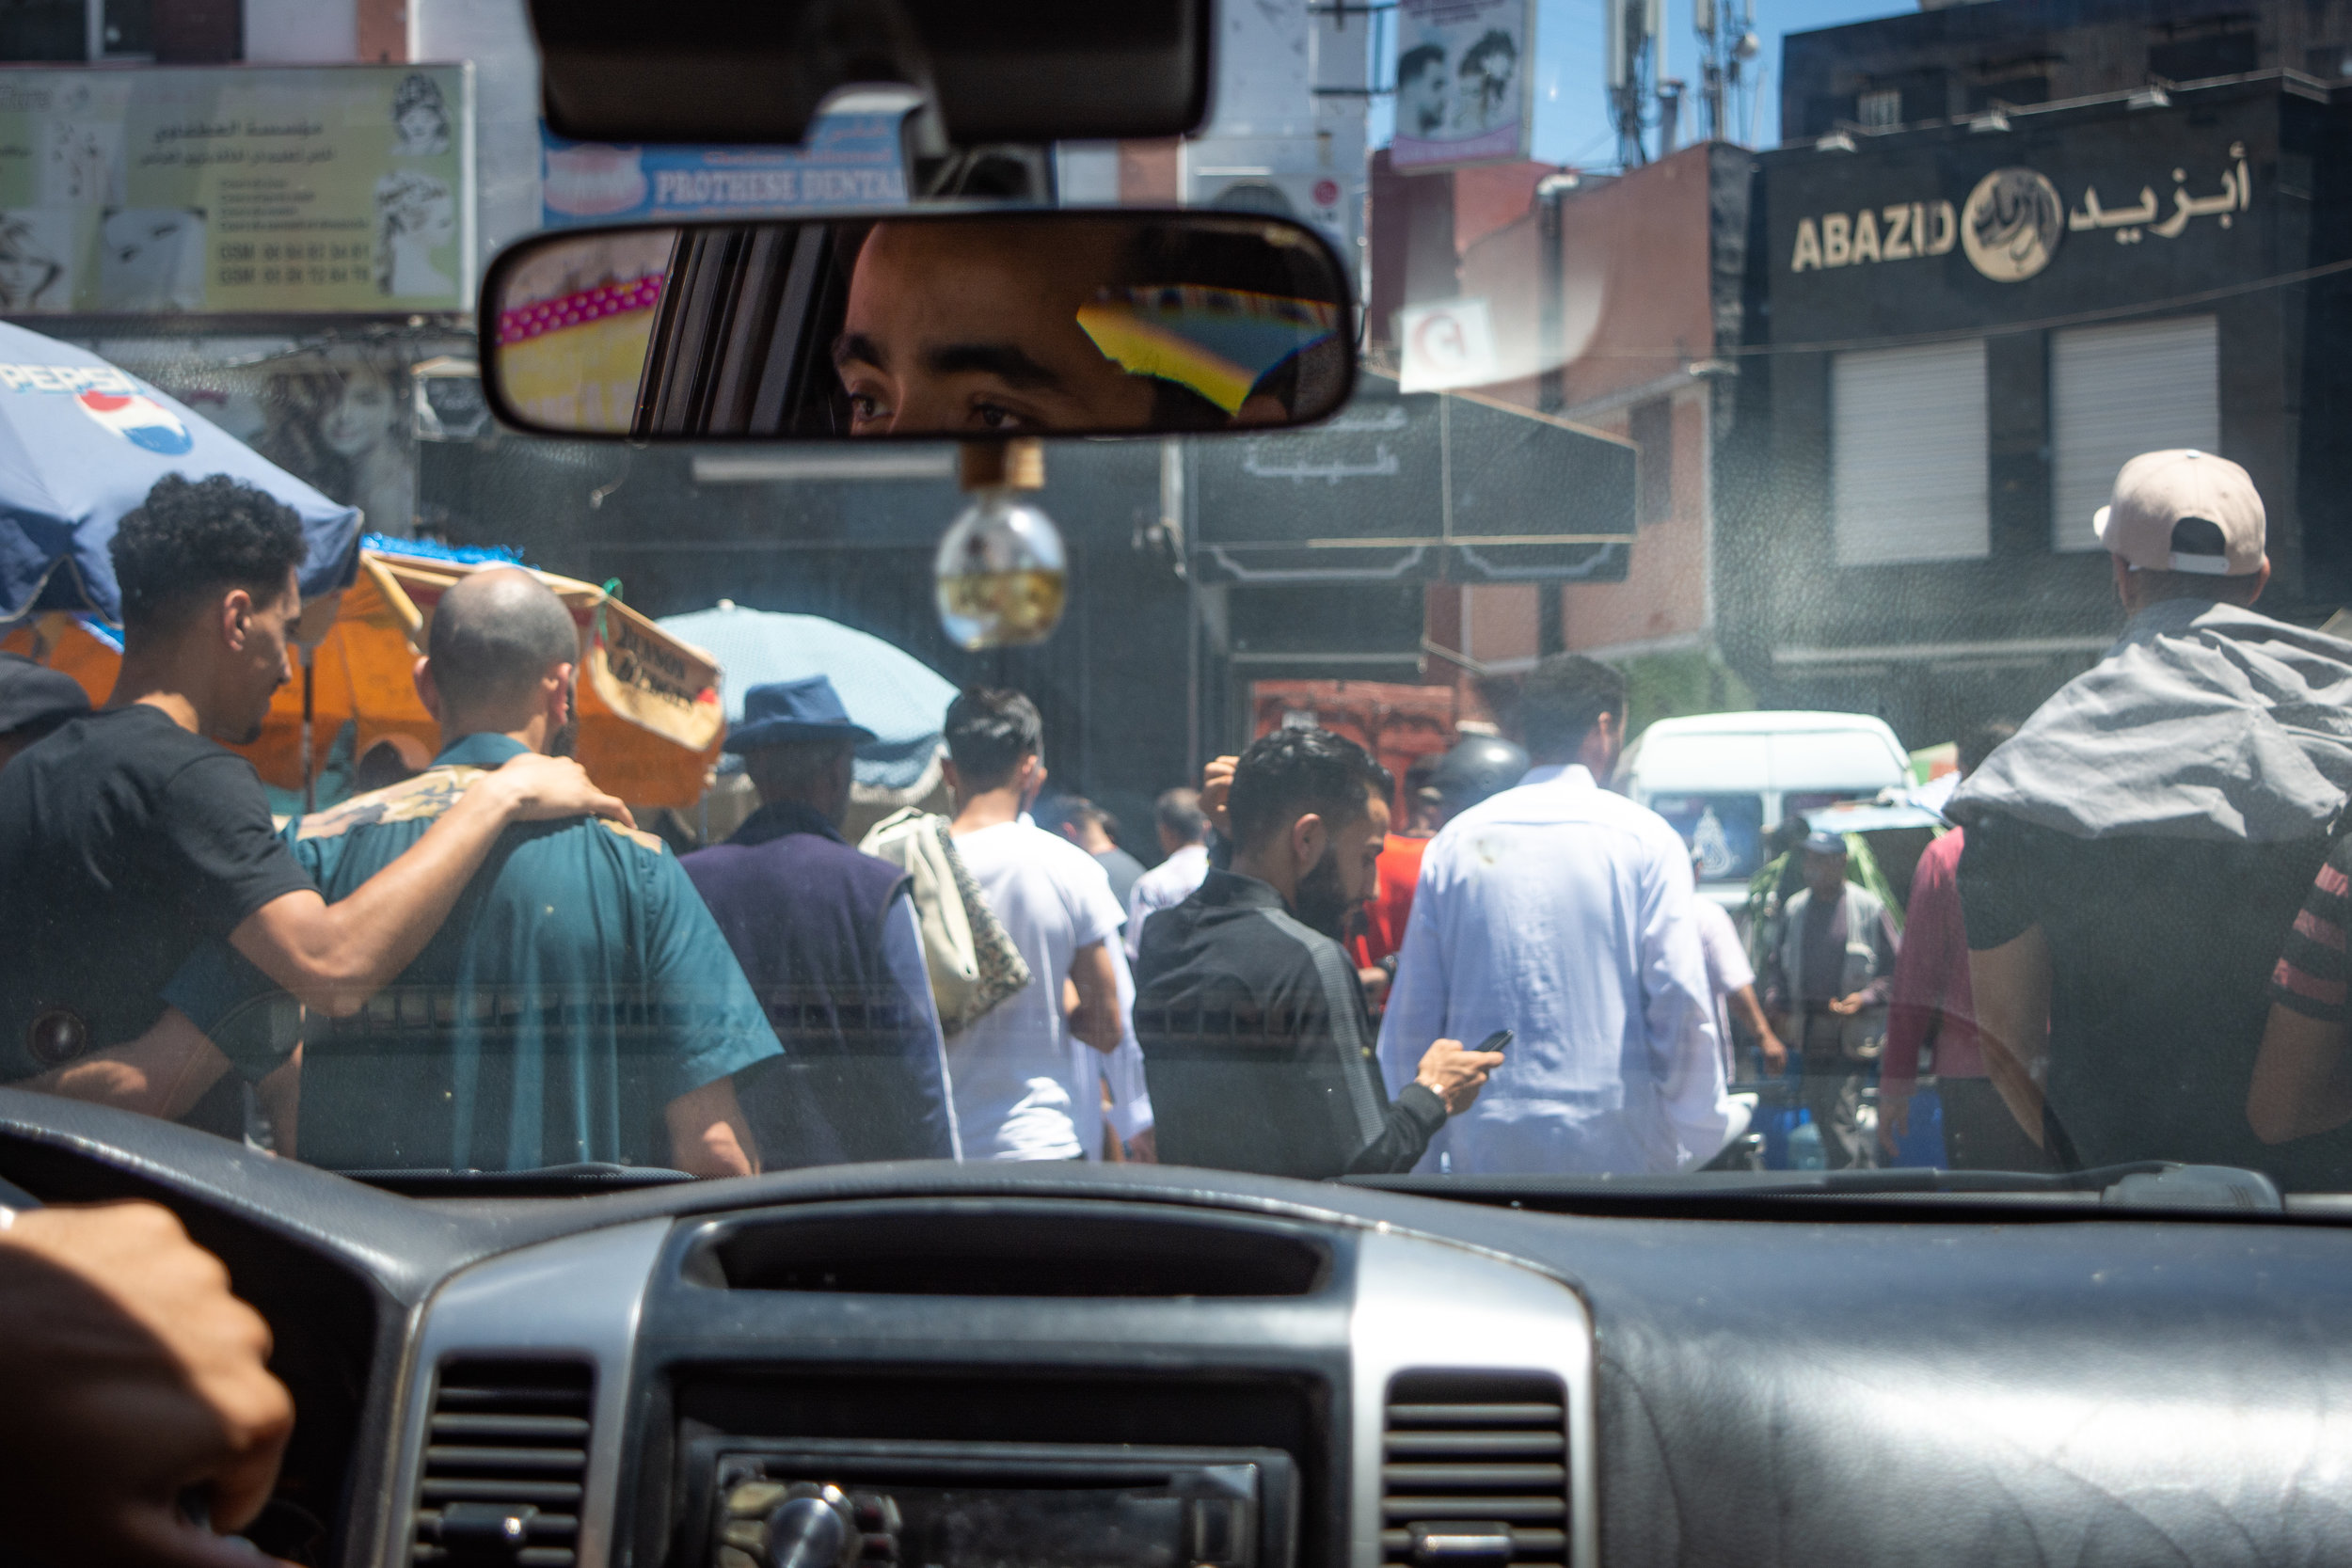 Drivers fight through afternoon traffic in the Habous quarter